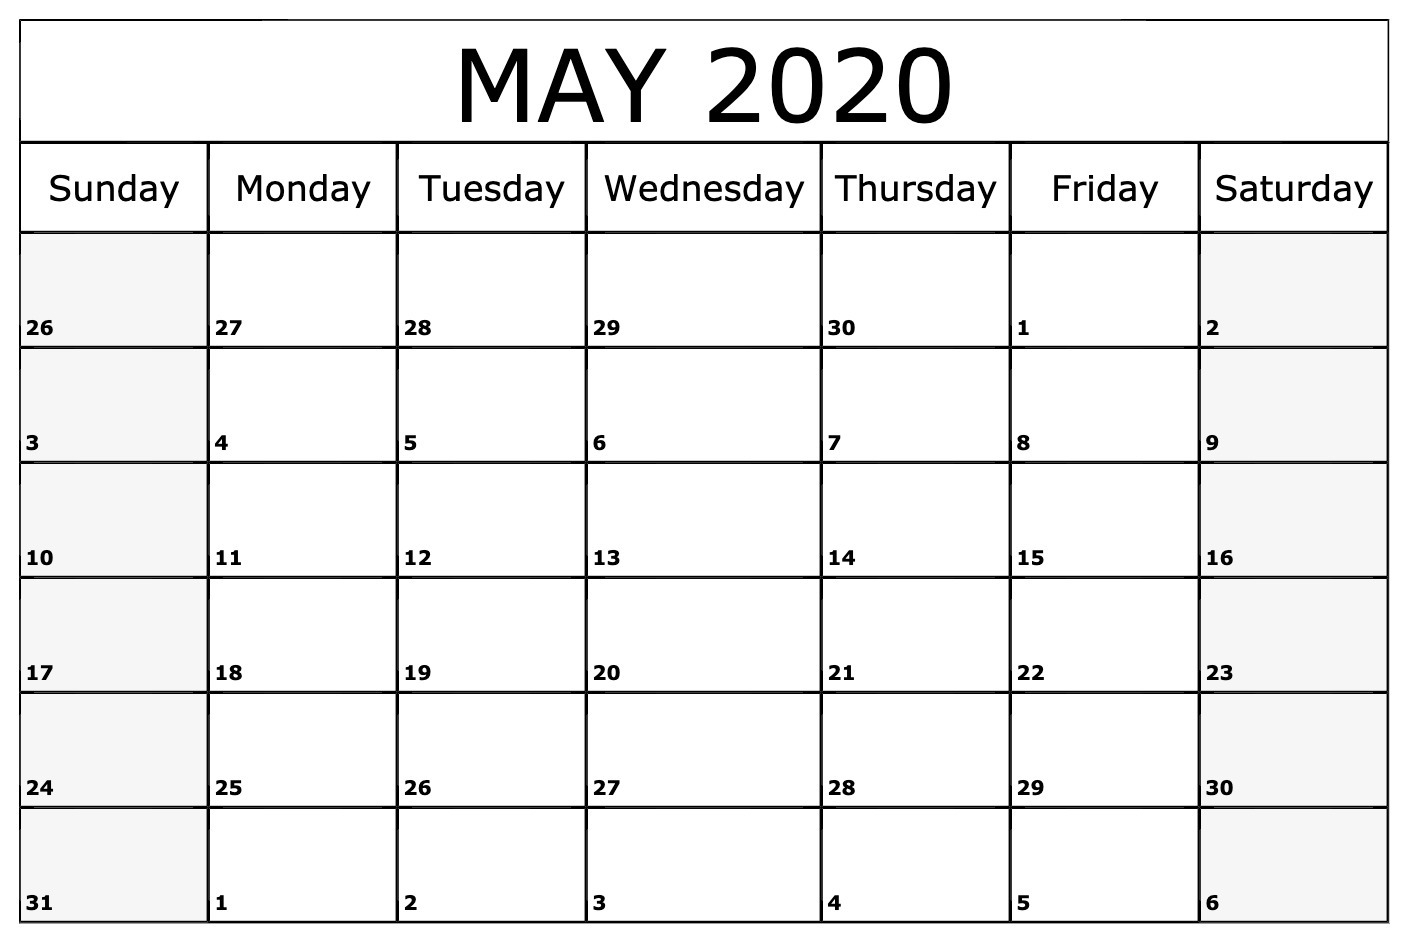 Free May 2020 Calendar – Blank Printable Template